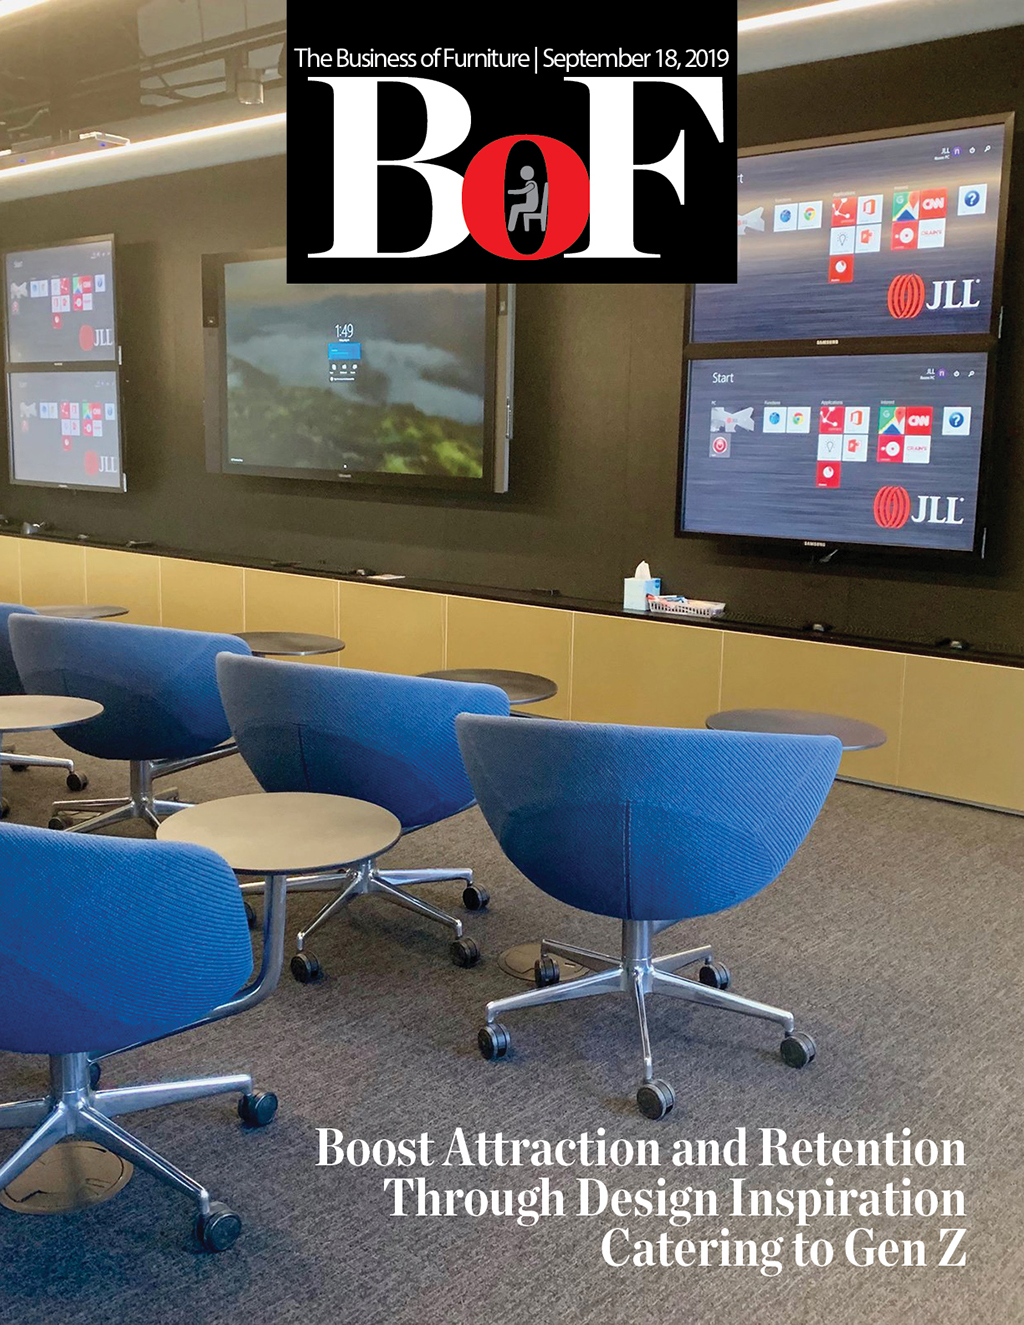 Enjoyable Bellow Press Latest Editions Of Business Of Furniture And Beatyapartments Chair Design Images Beatyapartmentscom